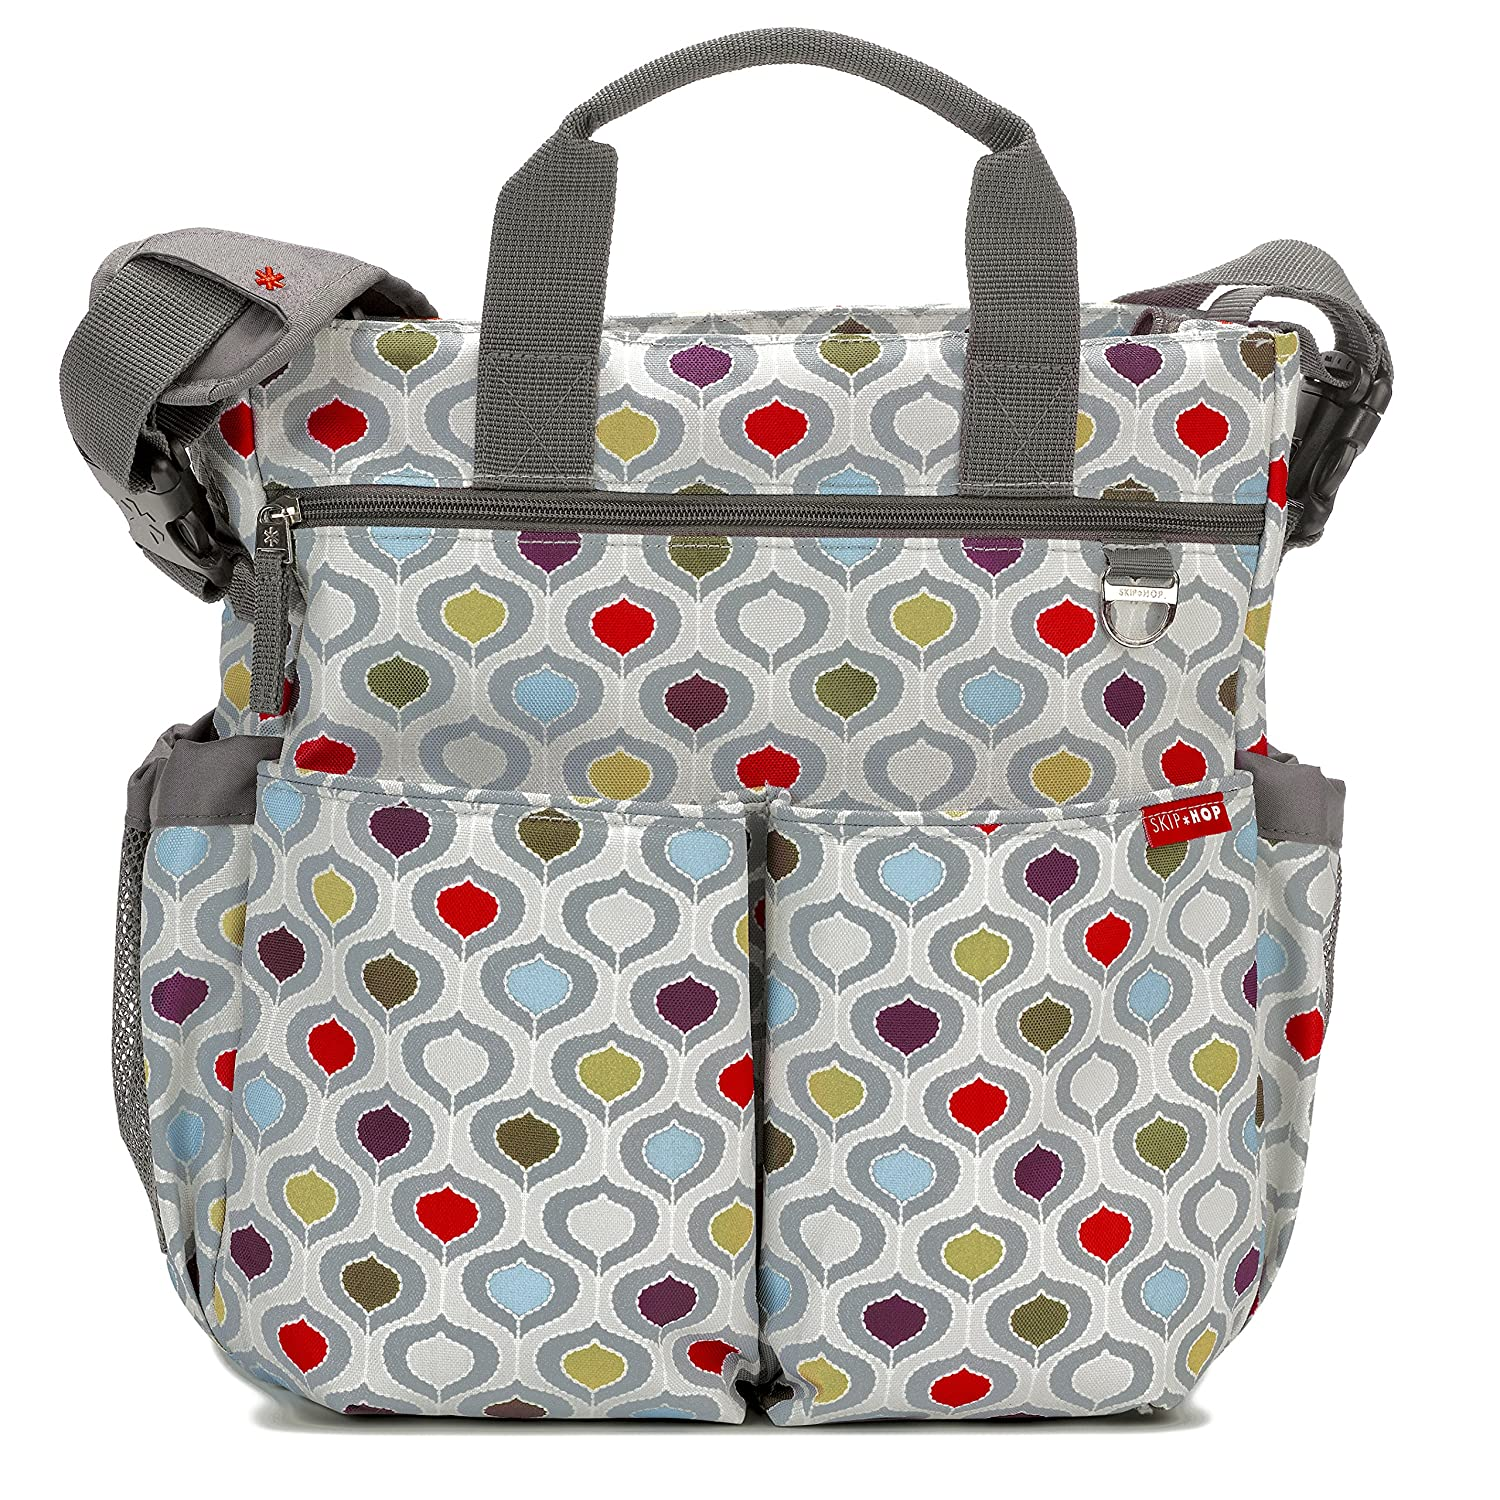 Top 8 Best Diaper Bags (2020 Reviews & Buying Guide) 5